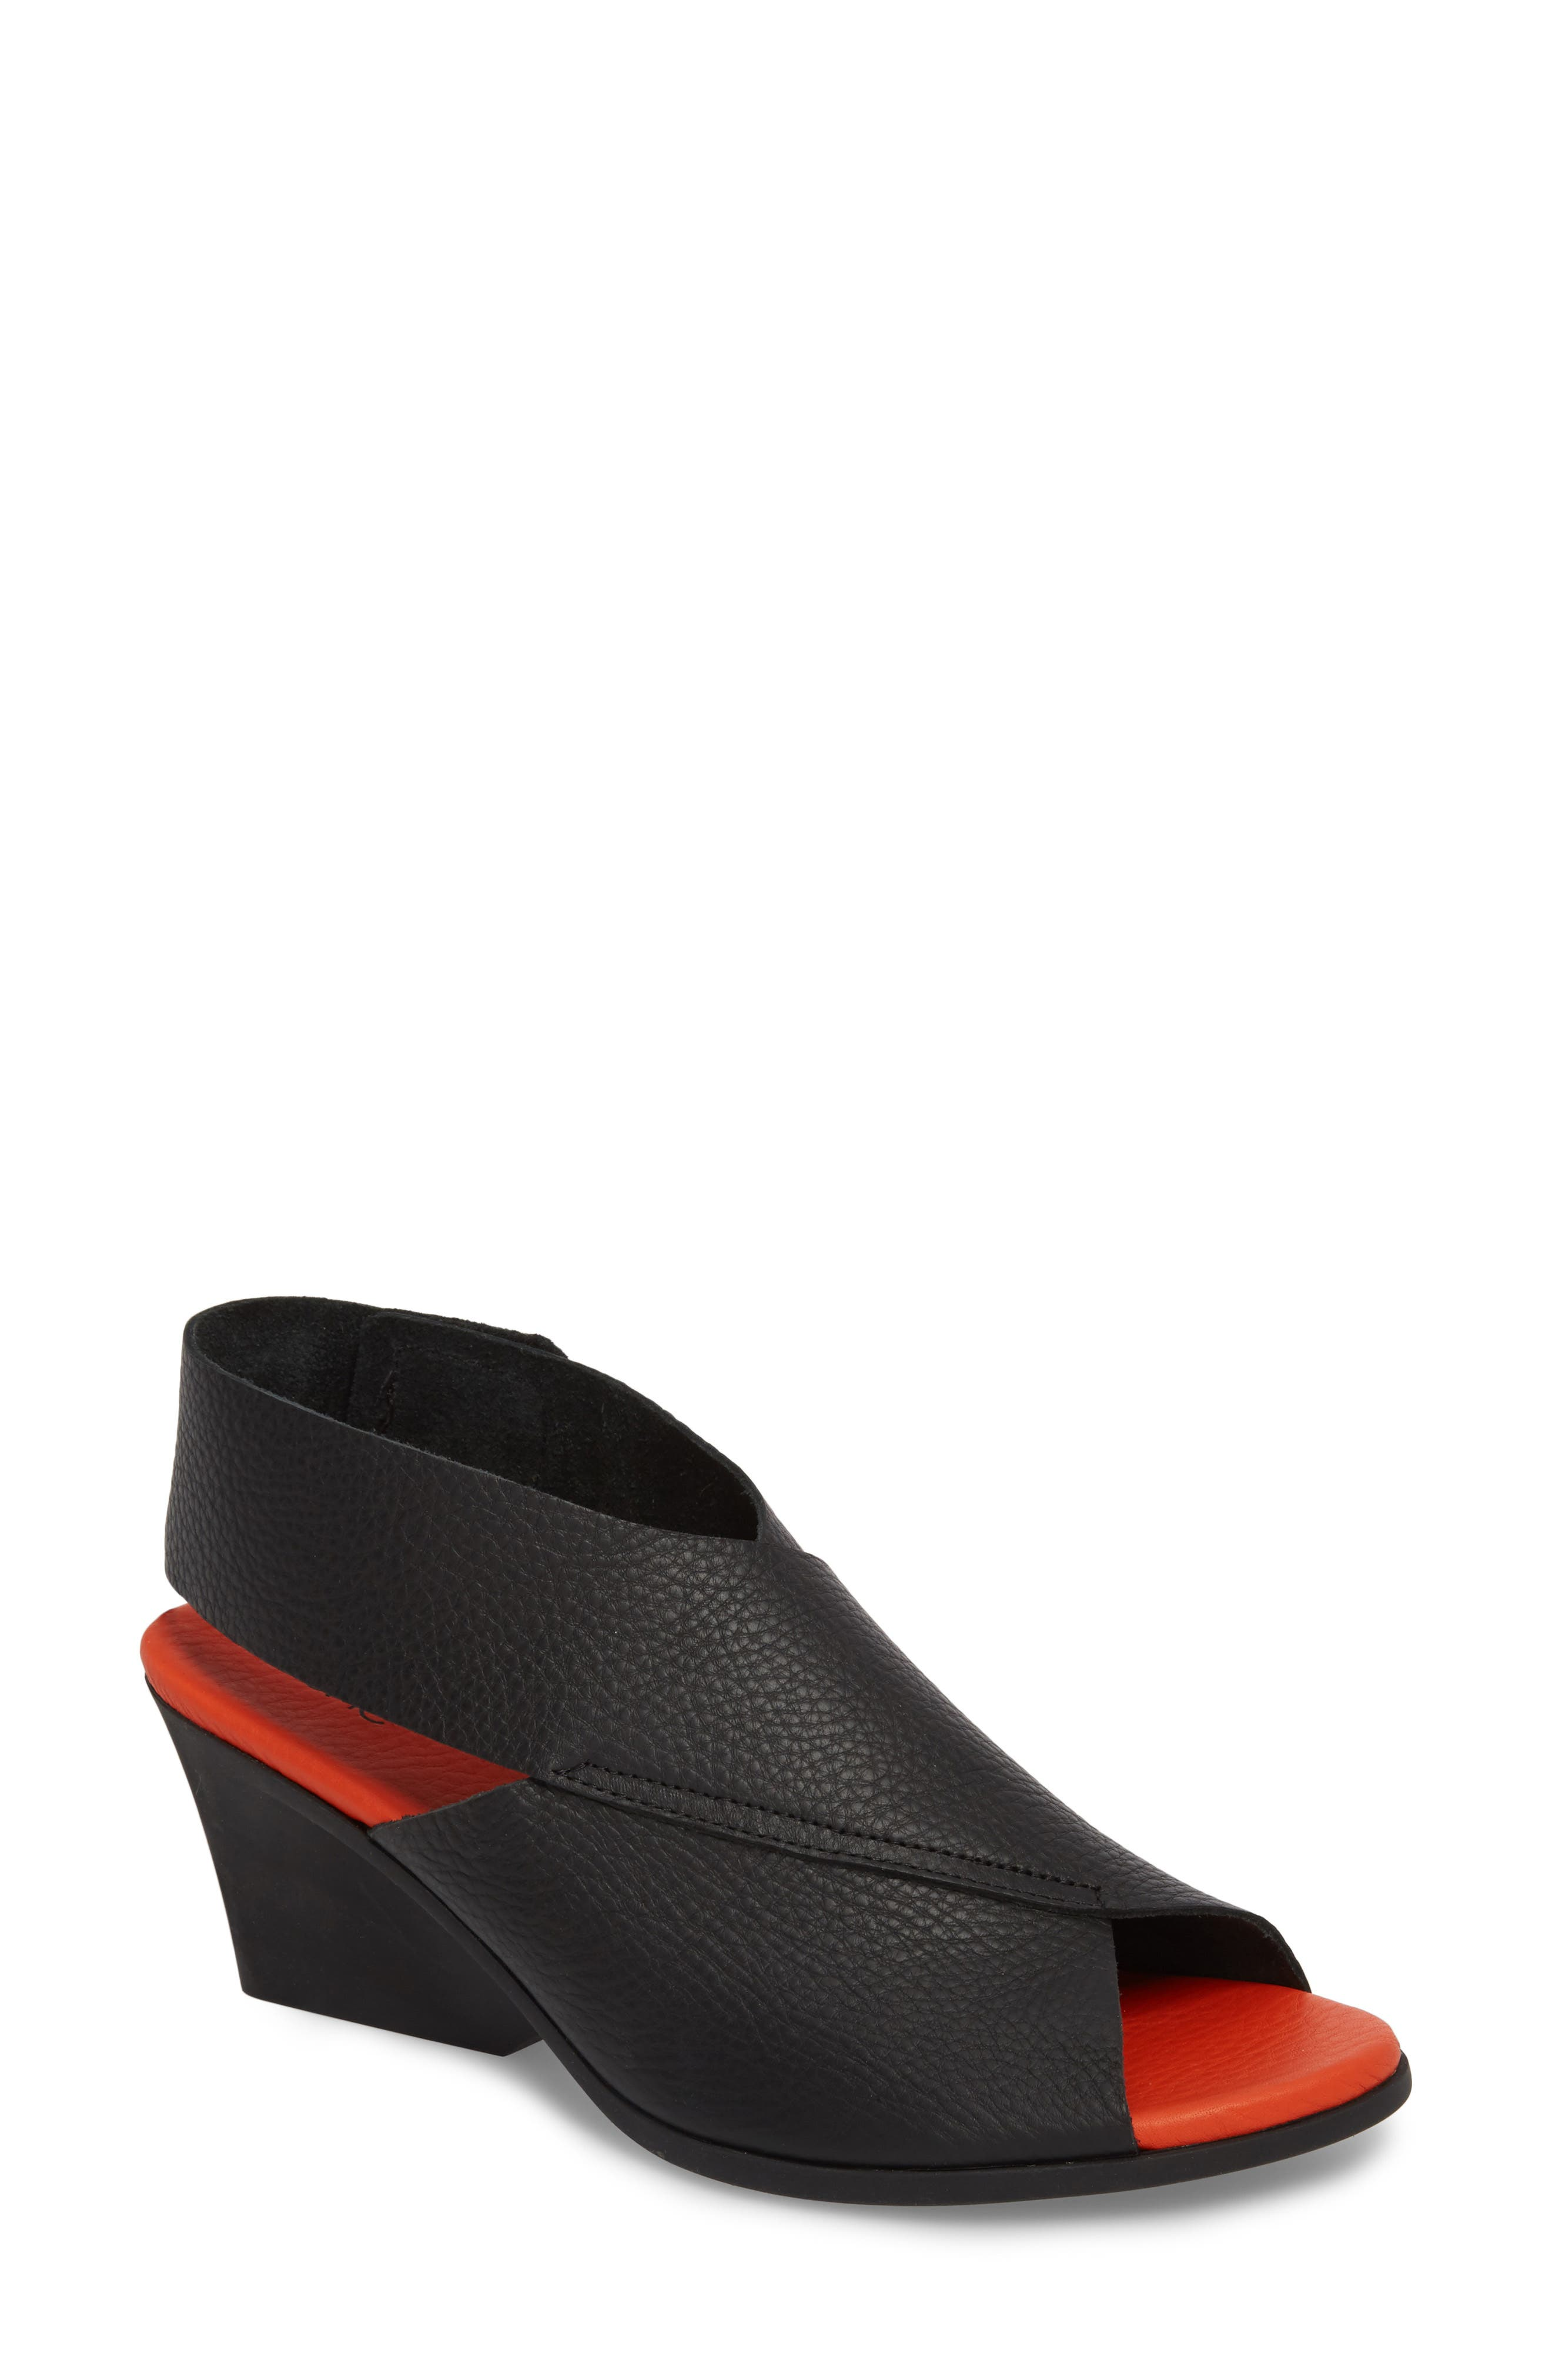 Ritual Wedge Sandal,                         Main,                         color, 006